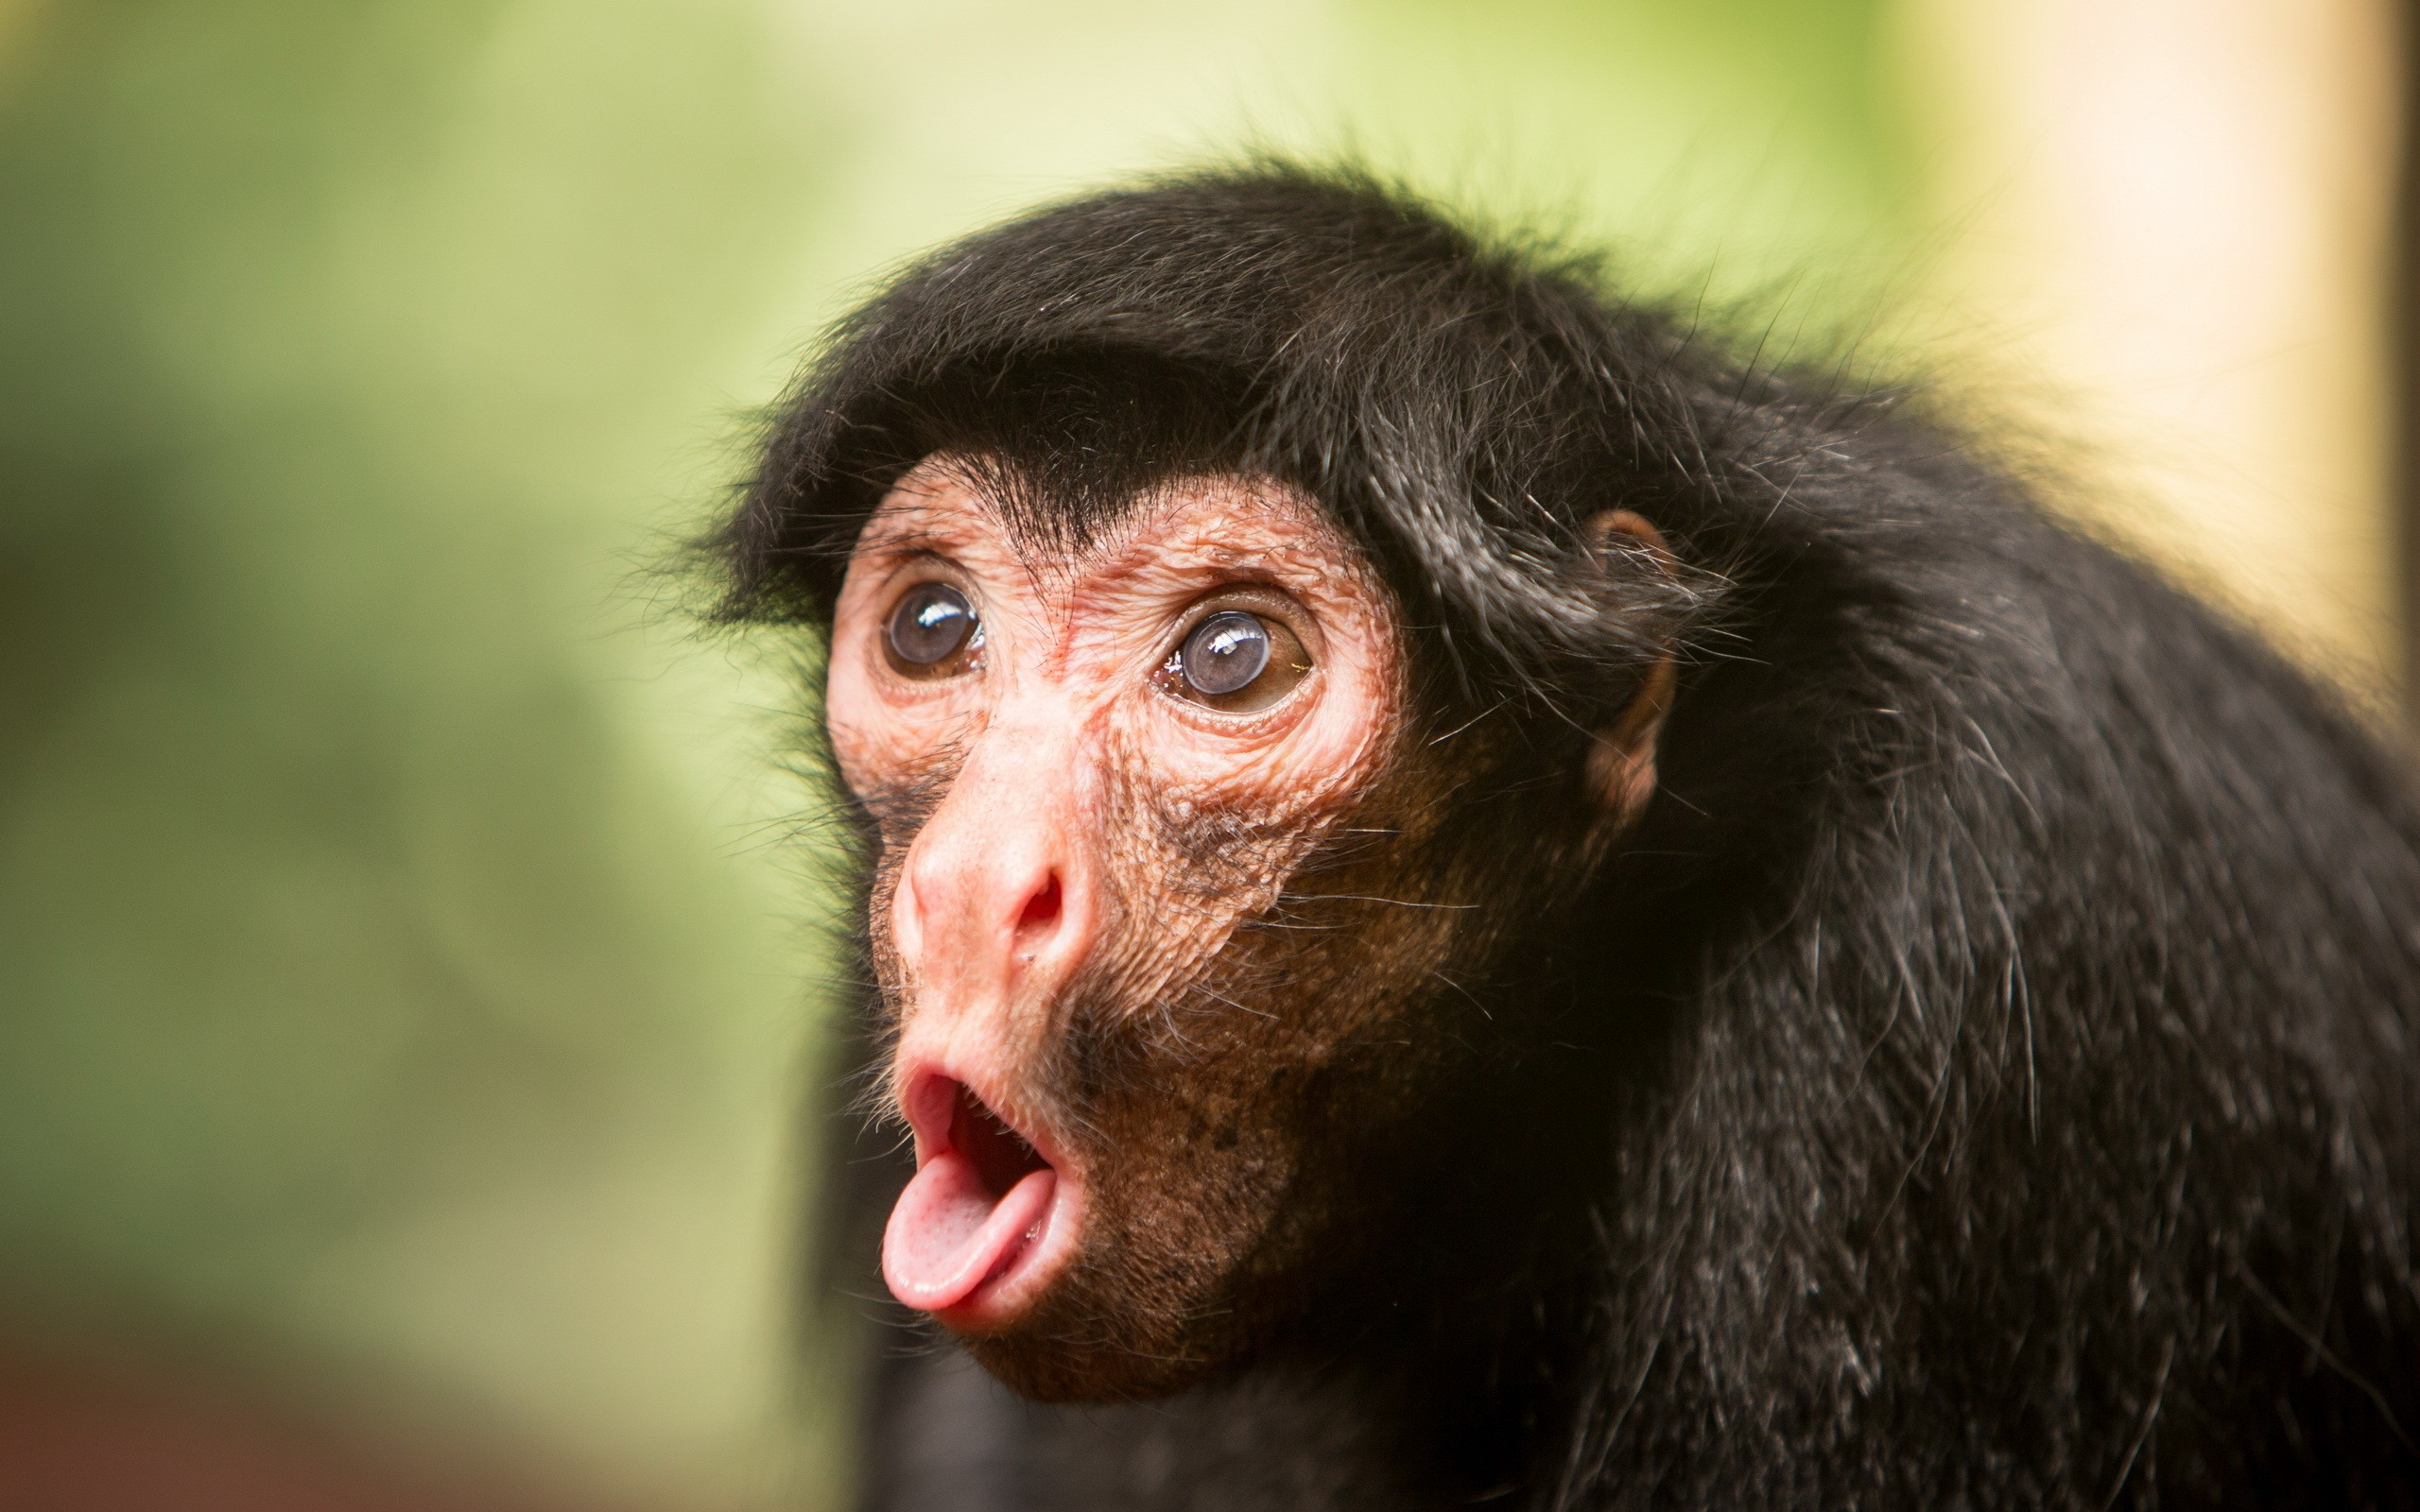 Wallpaper Chimpanzee Monkey Cute Animals Funny 4518 Bring Some HD Wallpapers Into Your Life With WallpapersHome